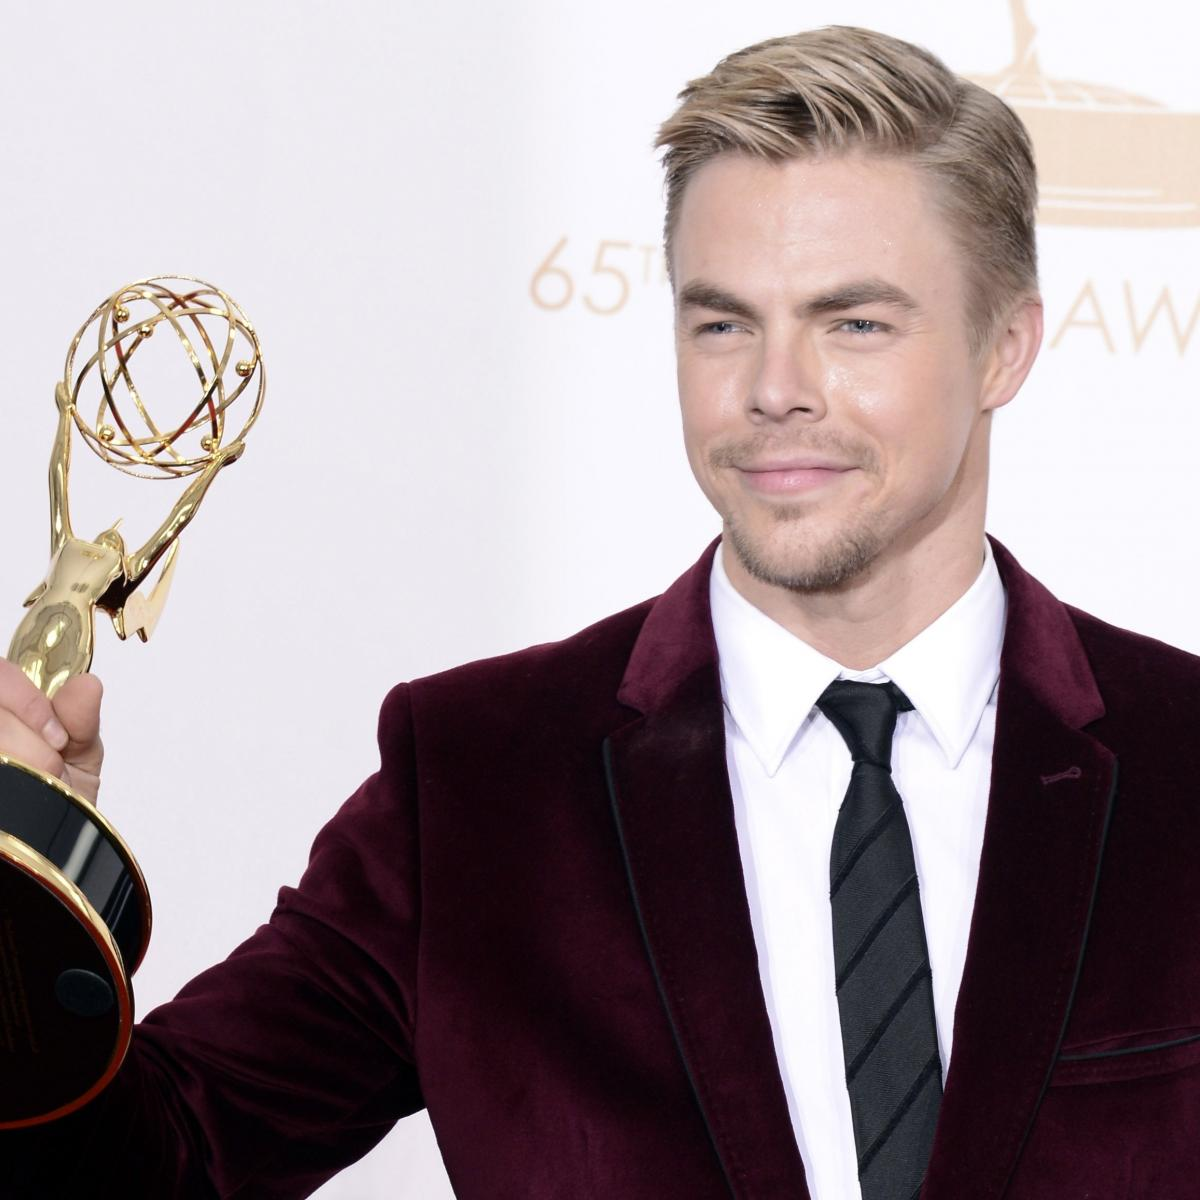 Derek Hough Olympics: Choreographer Is Key For A USA Gold